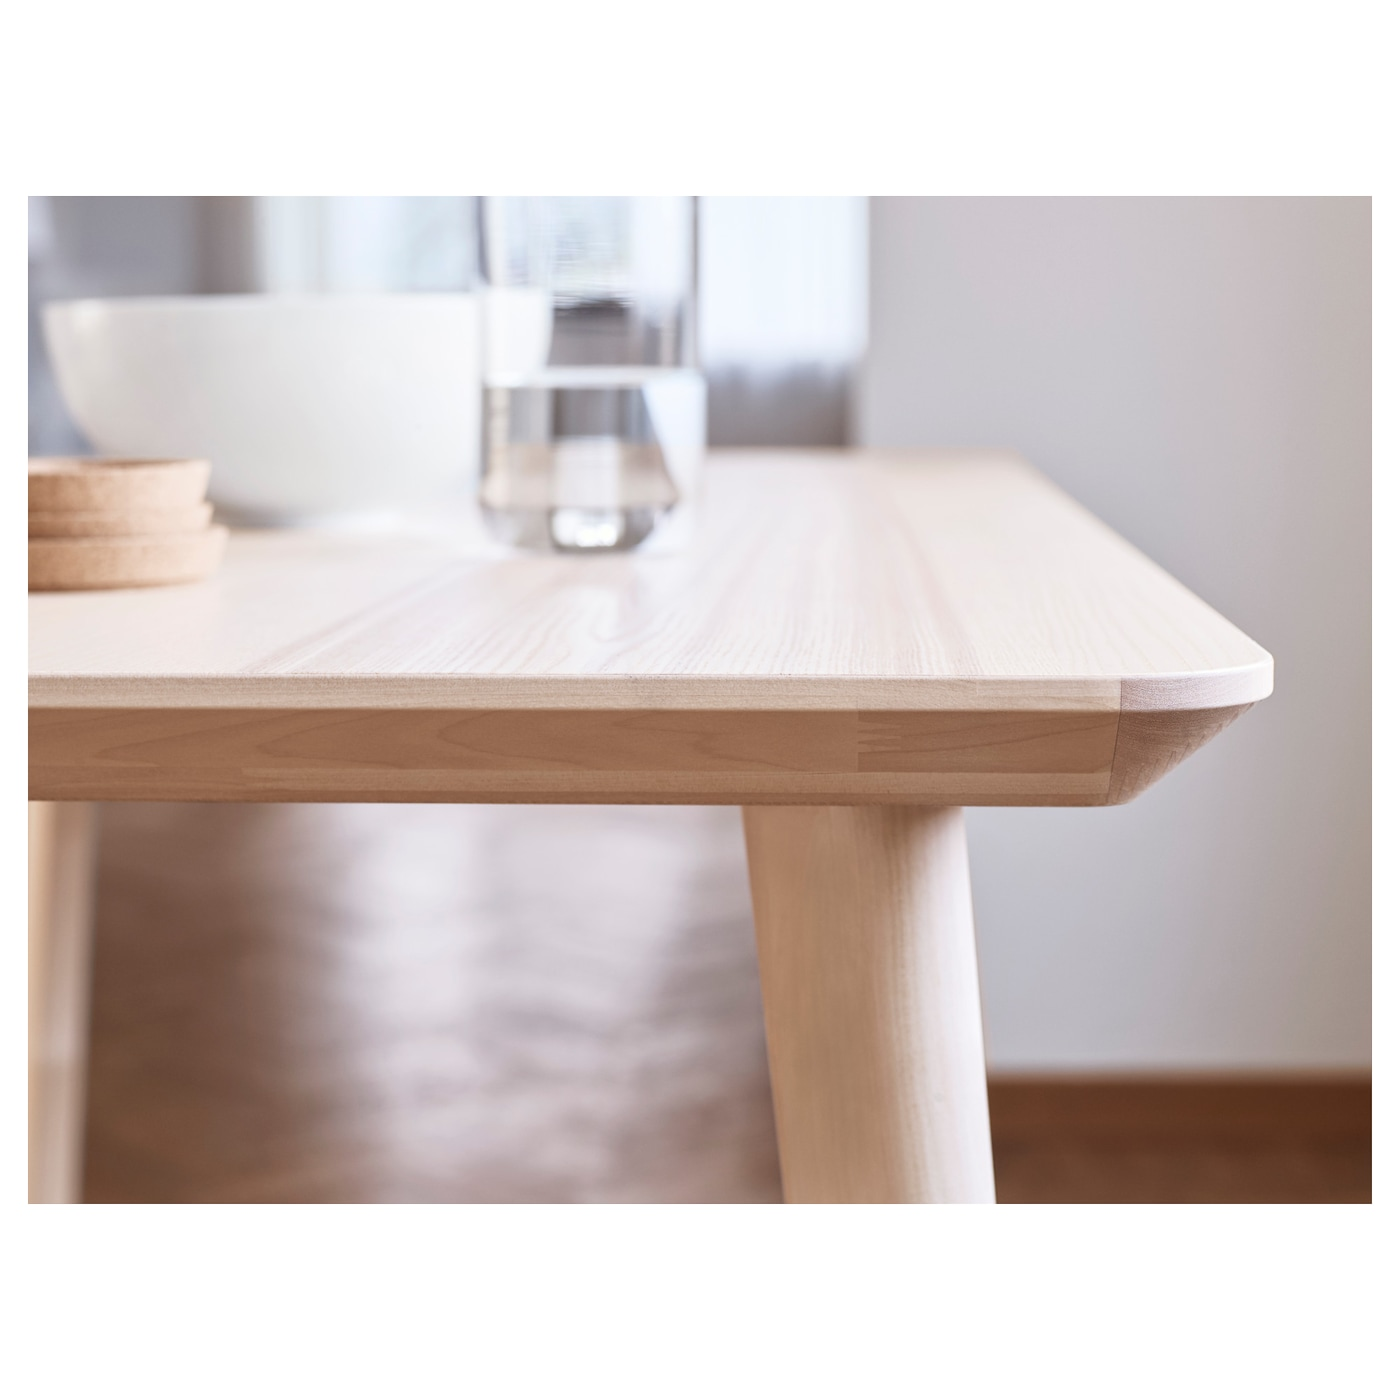 Lisabo coffee table ash veneer 70x70 cm ikea - Table basse verre ikea ...